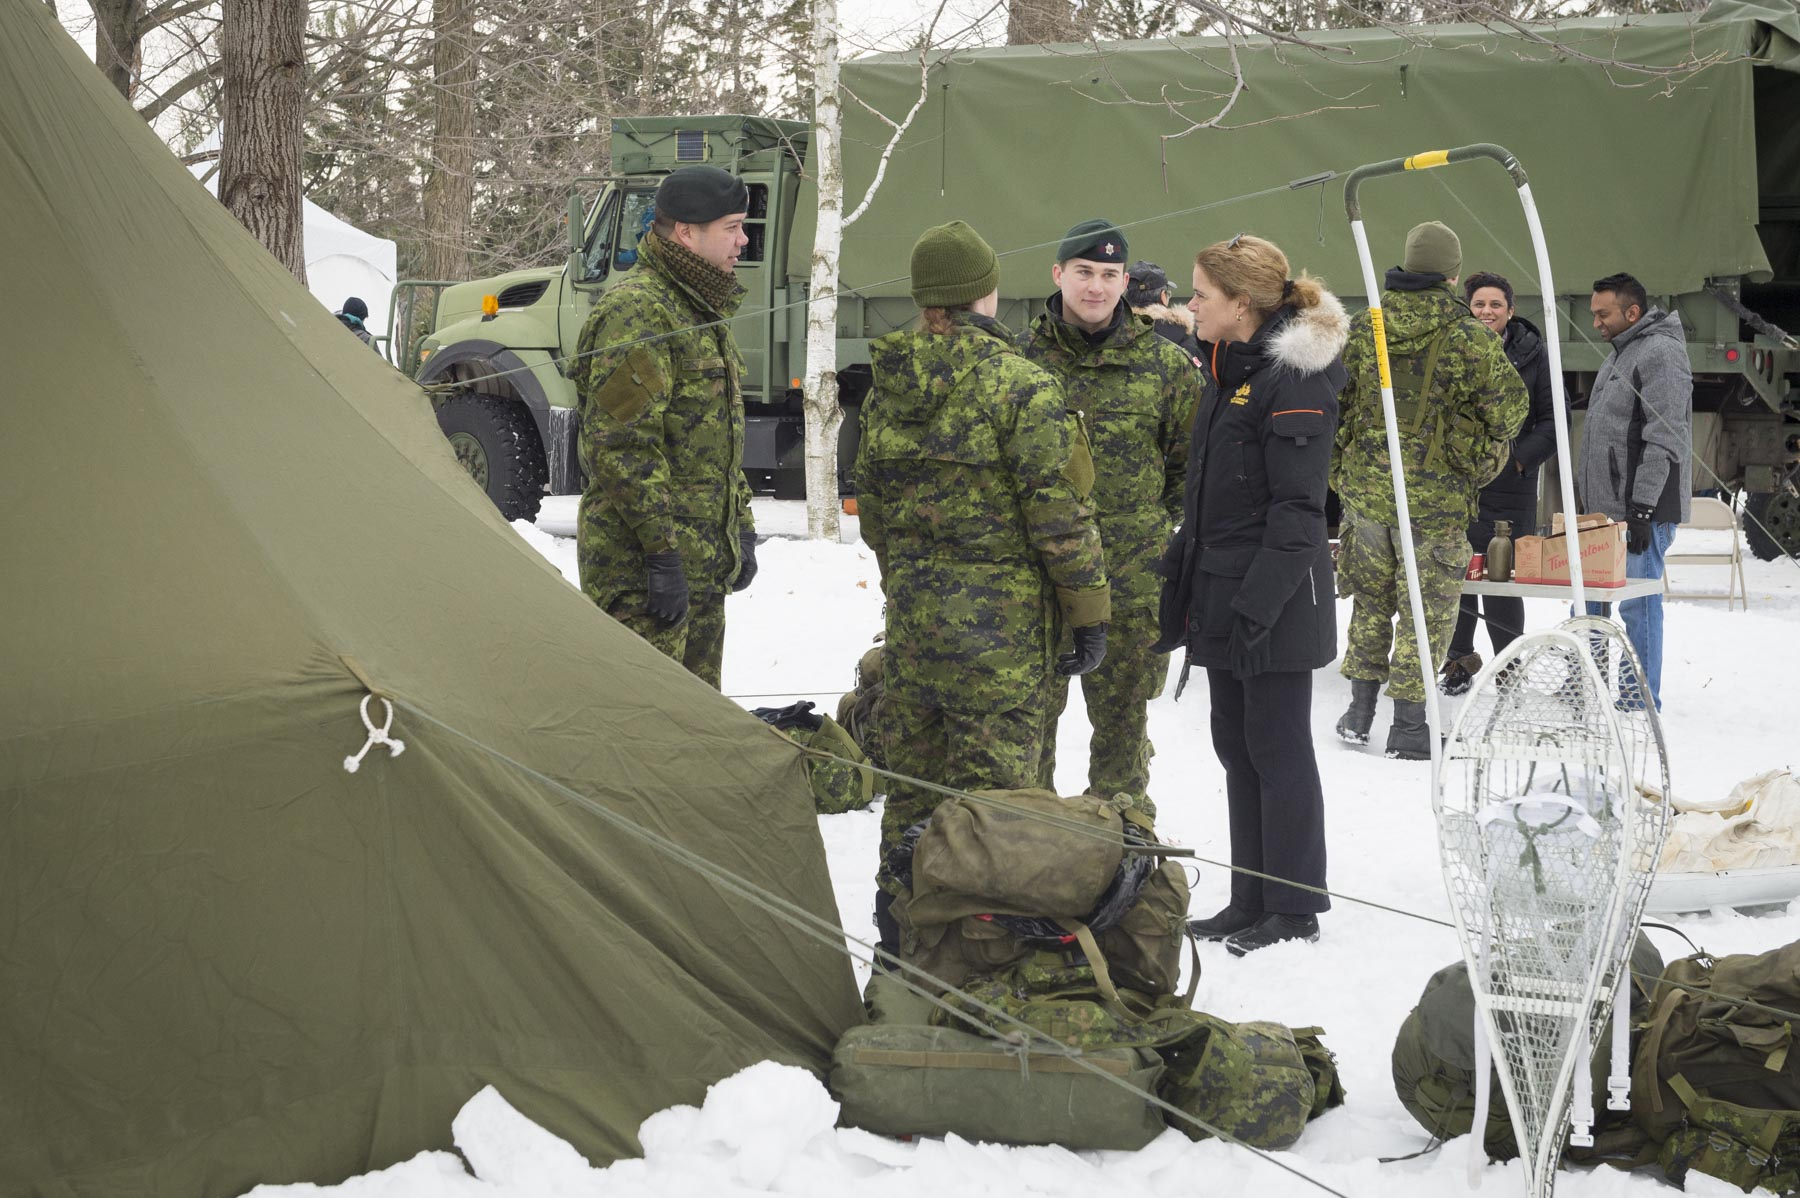 Members of the Governor General's Foot Guards also demonstrated how a military camp is set up for winter. Her Excellency Julie Payette is Commander-in-Chief of Canada.